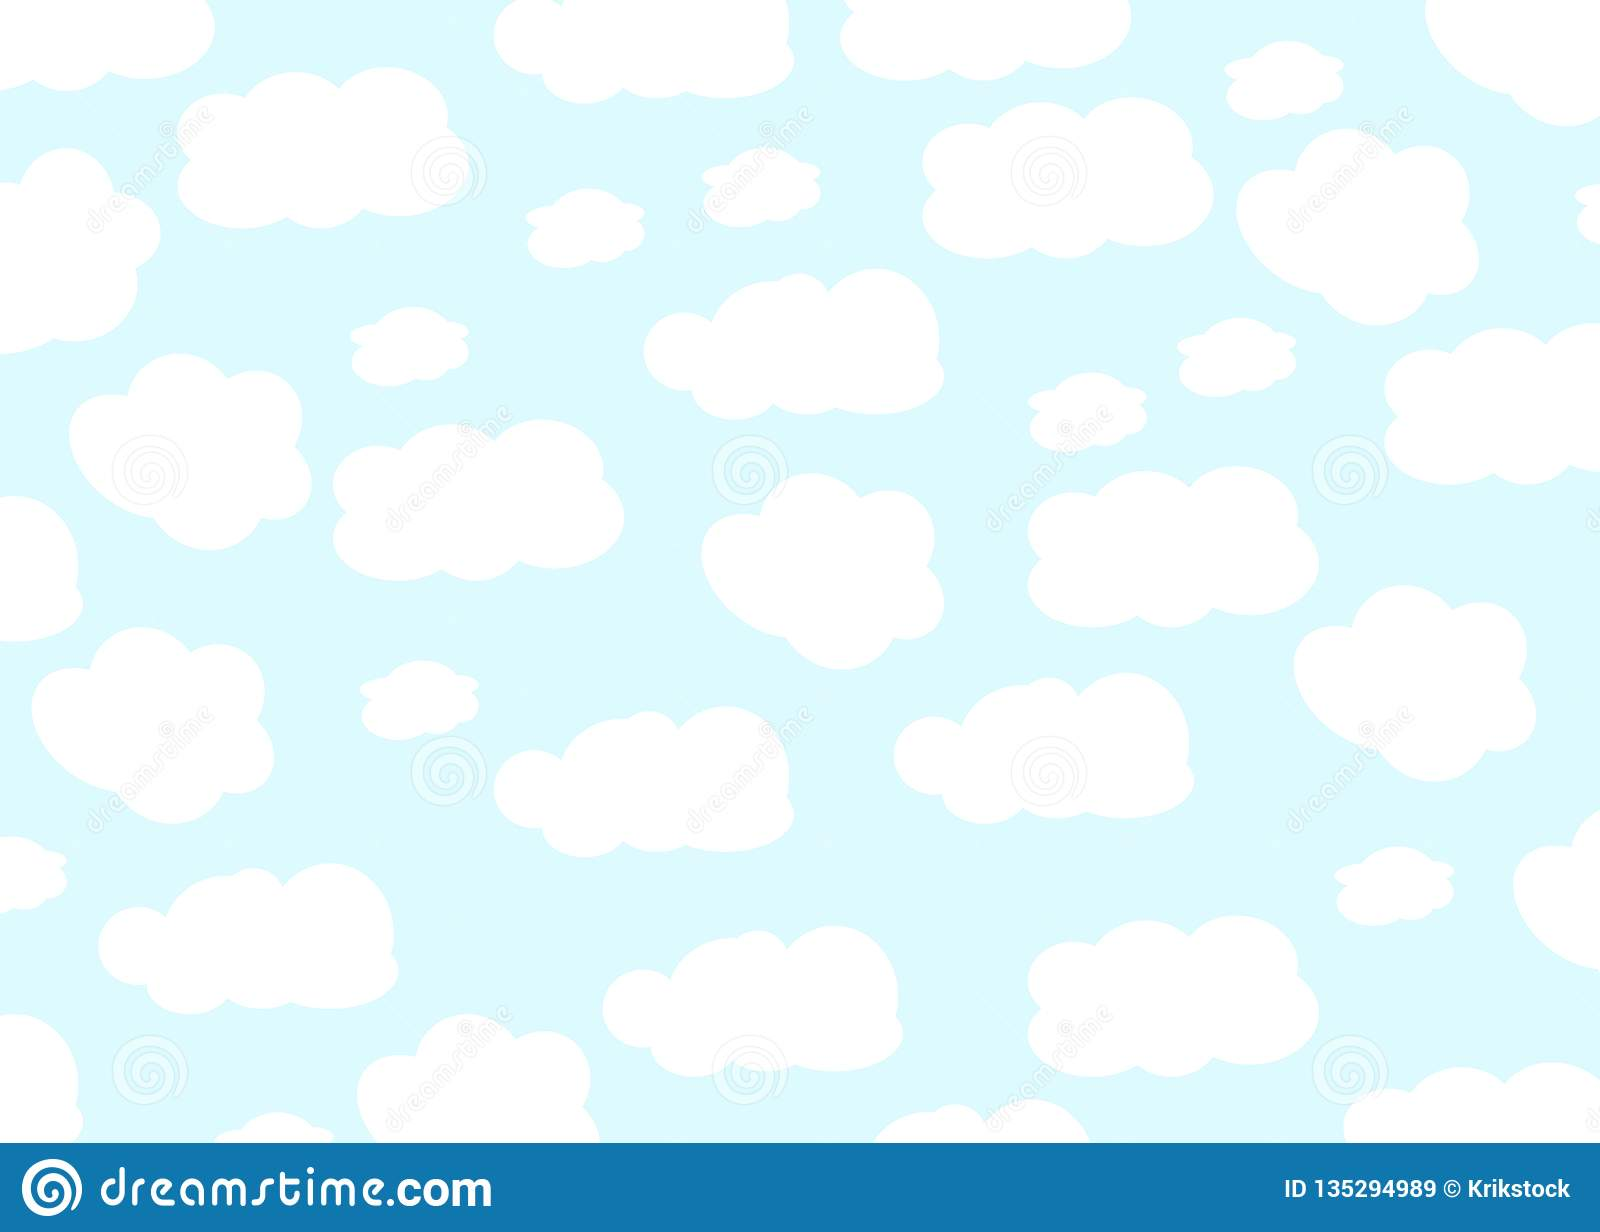 Cloud Design  Baby Background  Blue Sky With Clouds  Vector